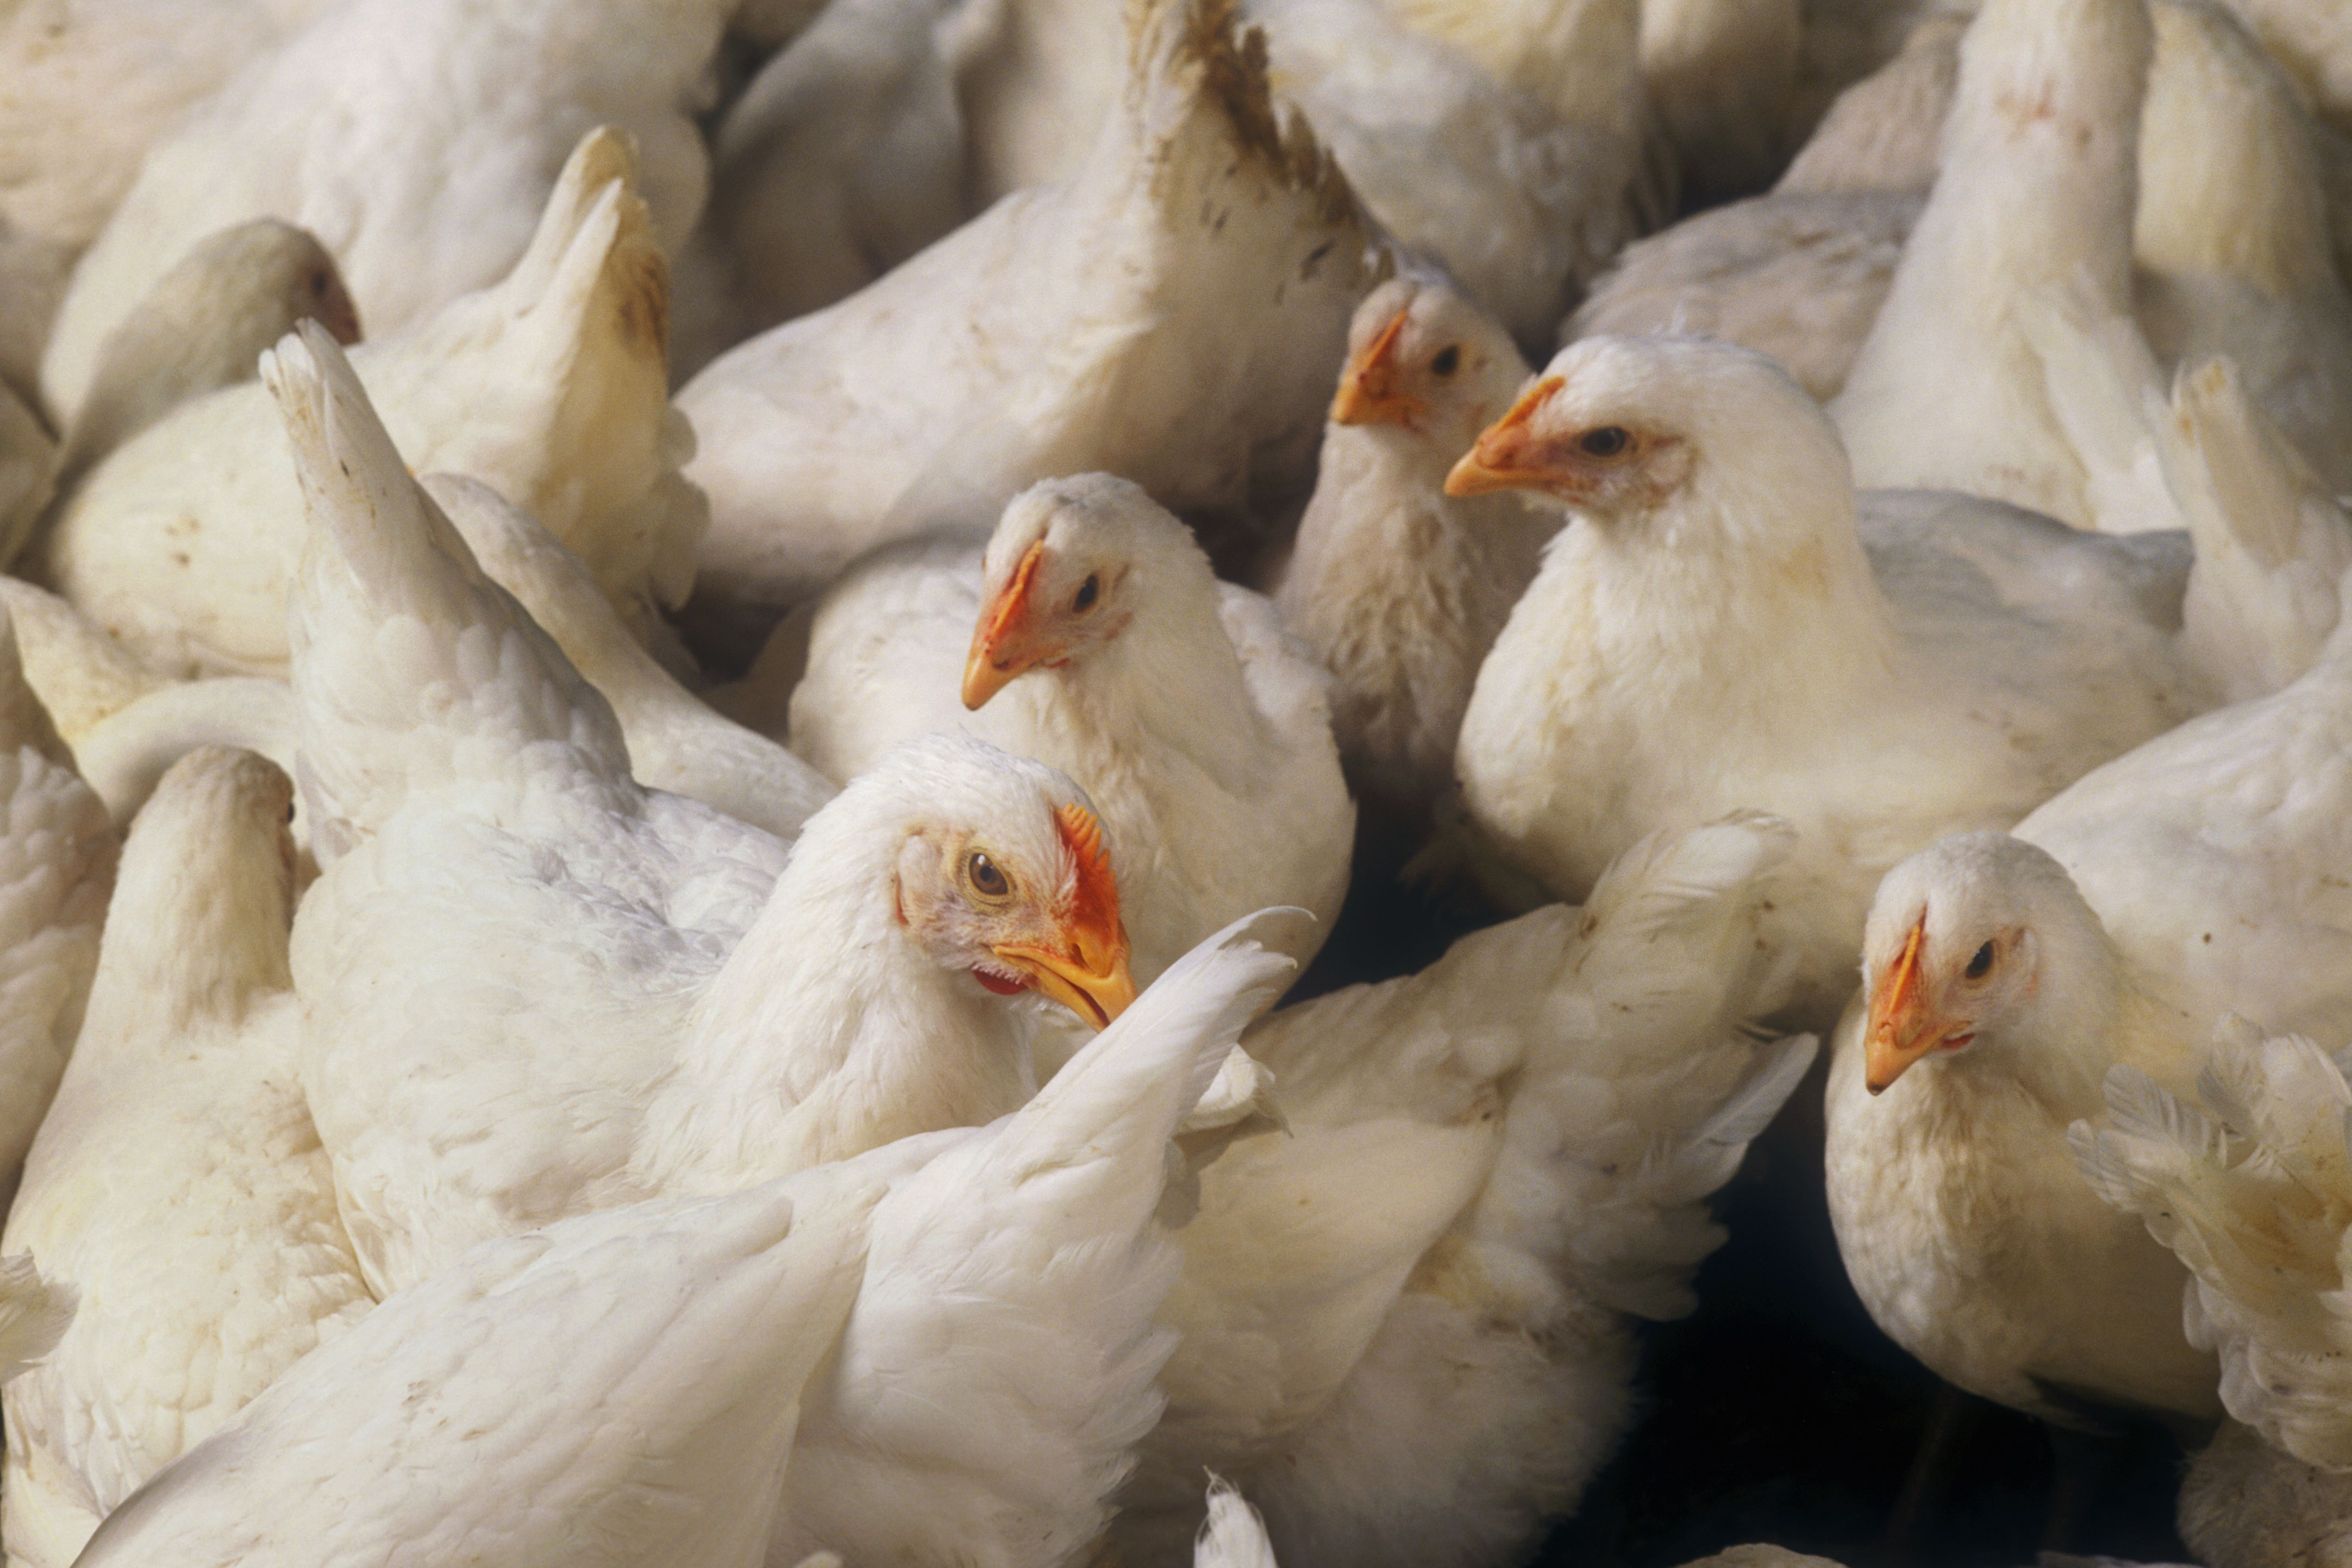 Richard Griffiths, British Poultry Council chief executive, said in a blog published last month that effective stunning of poultry prior to slaughter was absolutely essential and offered the best welfare option. Photo: Design Pics Inc/Rex/Shutterstock